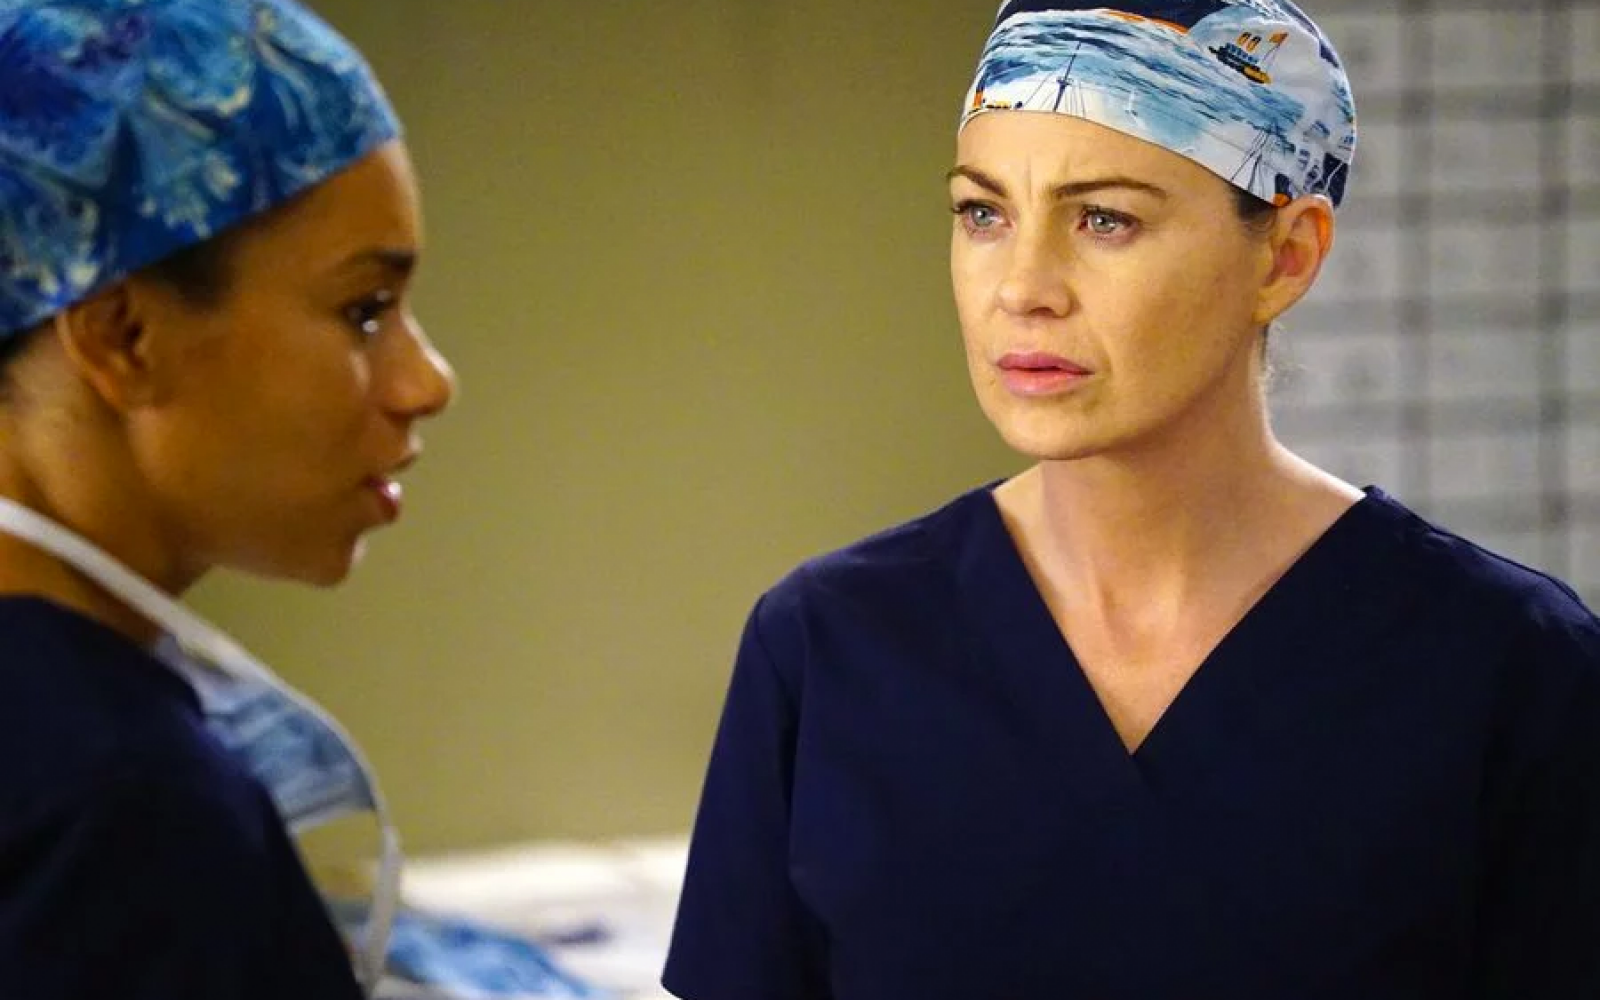 14 Of The Most Iconic Moments In Grey's Anatomy